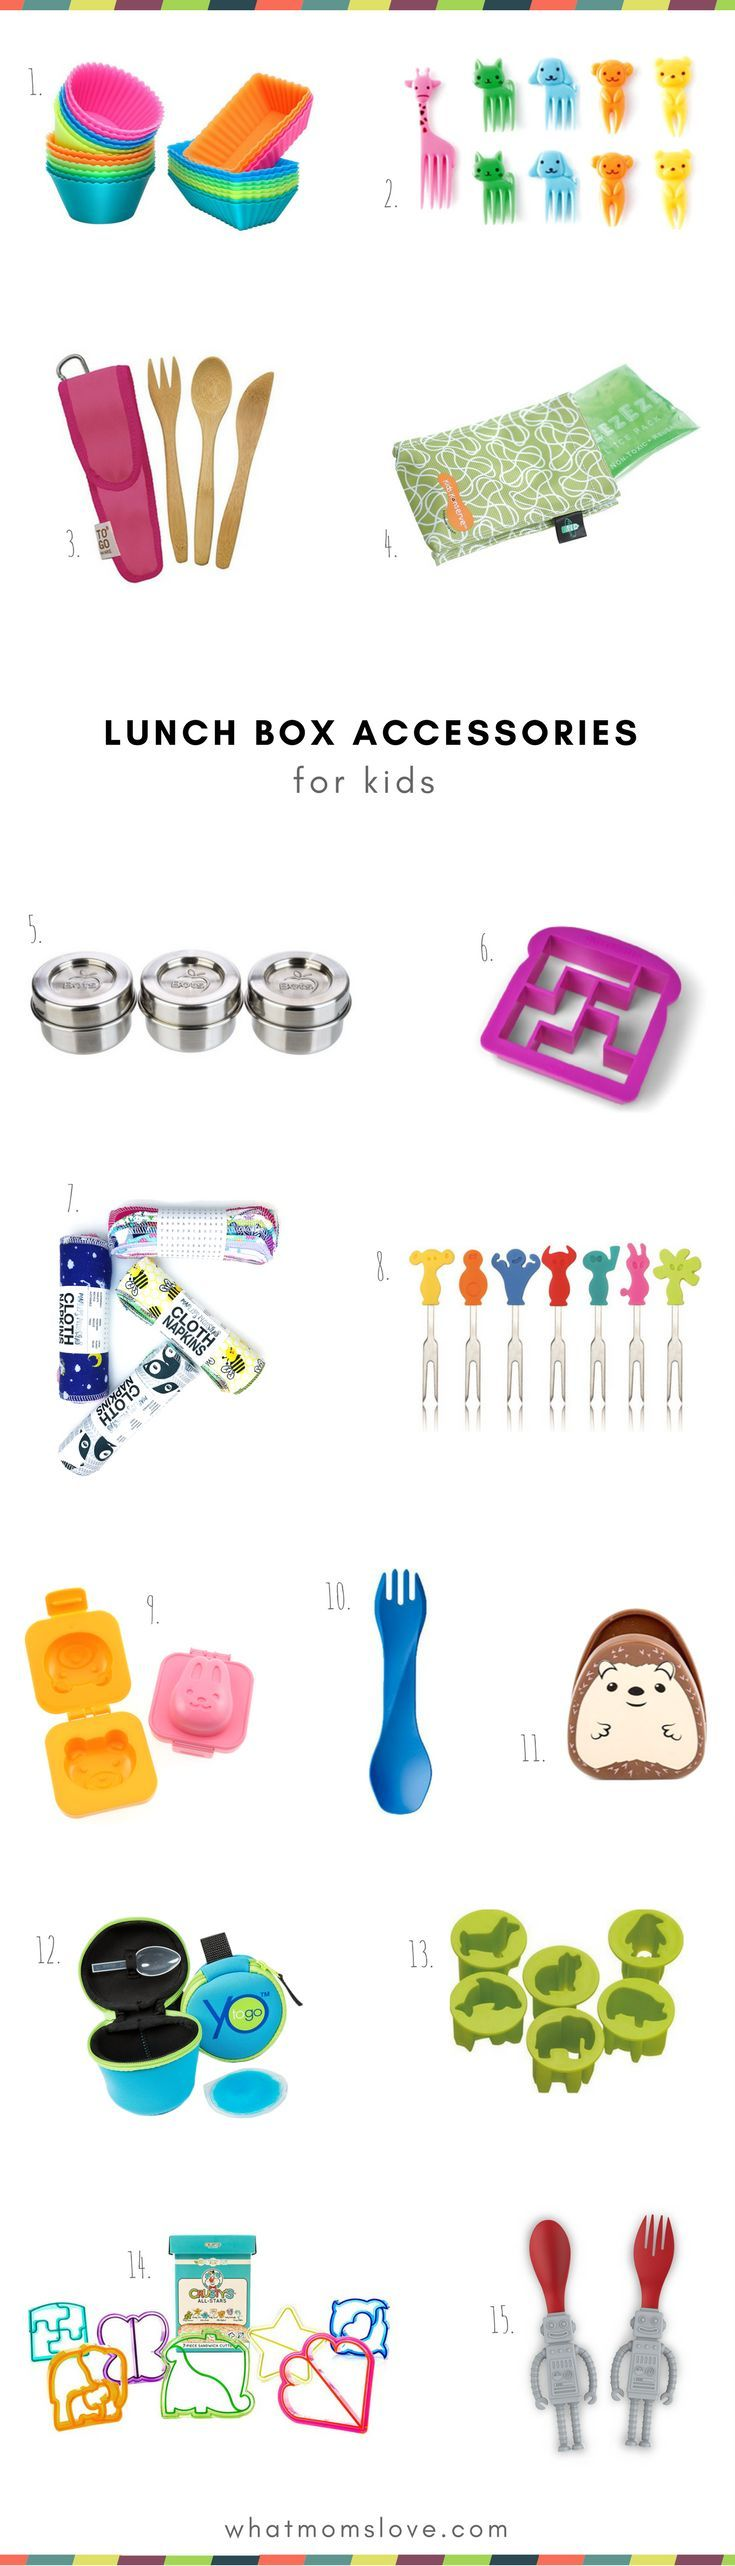 Fun Lunch Box Supplies and Tools for kids | How to pack a bento box and make a fun, healthy lunch for kindergarteners to teens | Back to School Guide